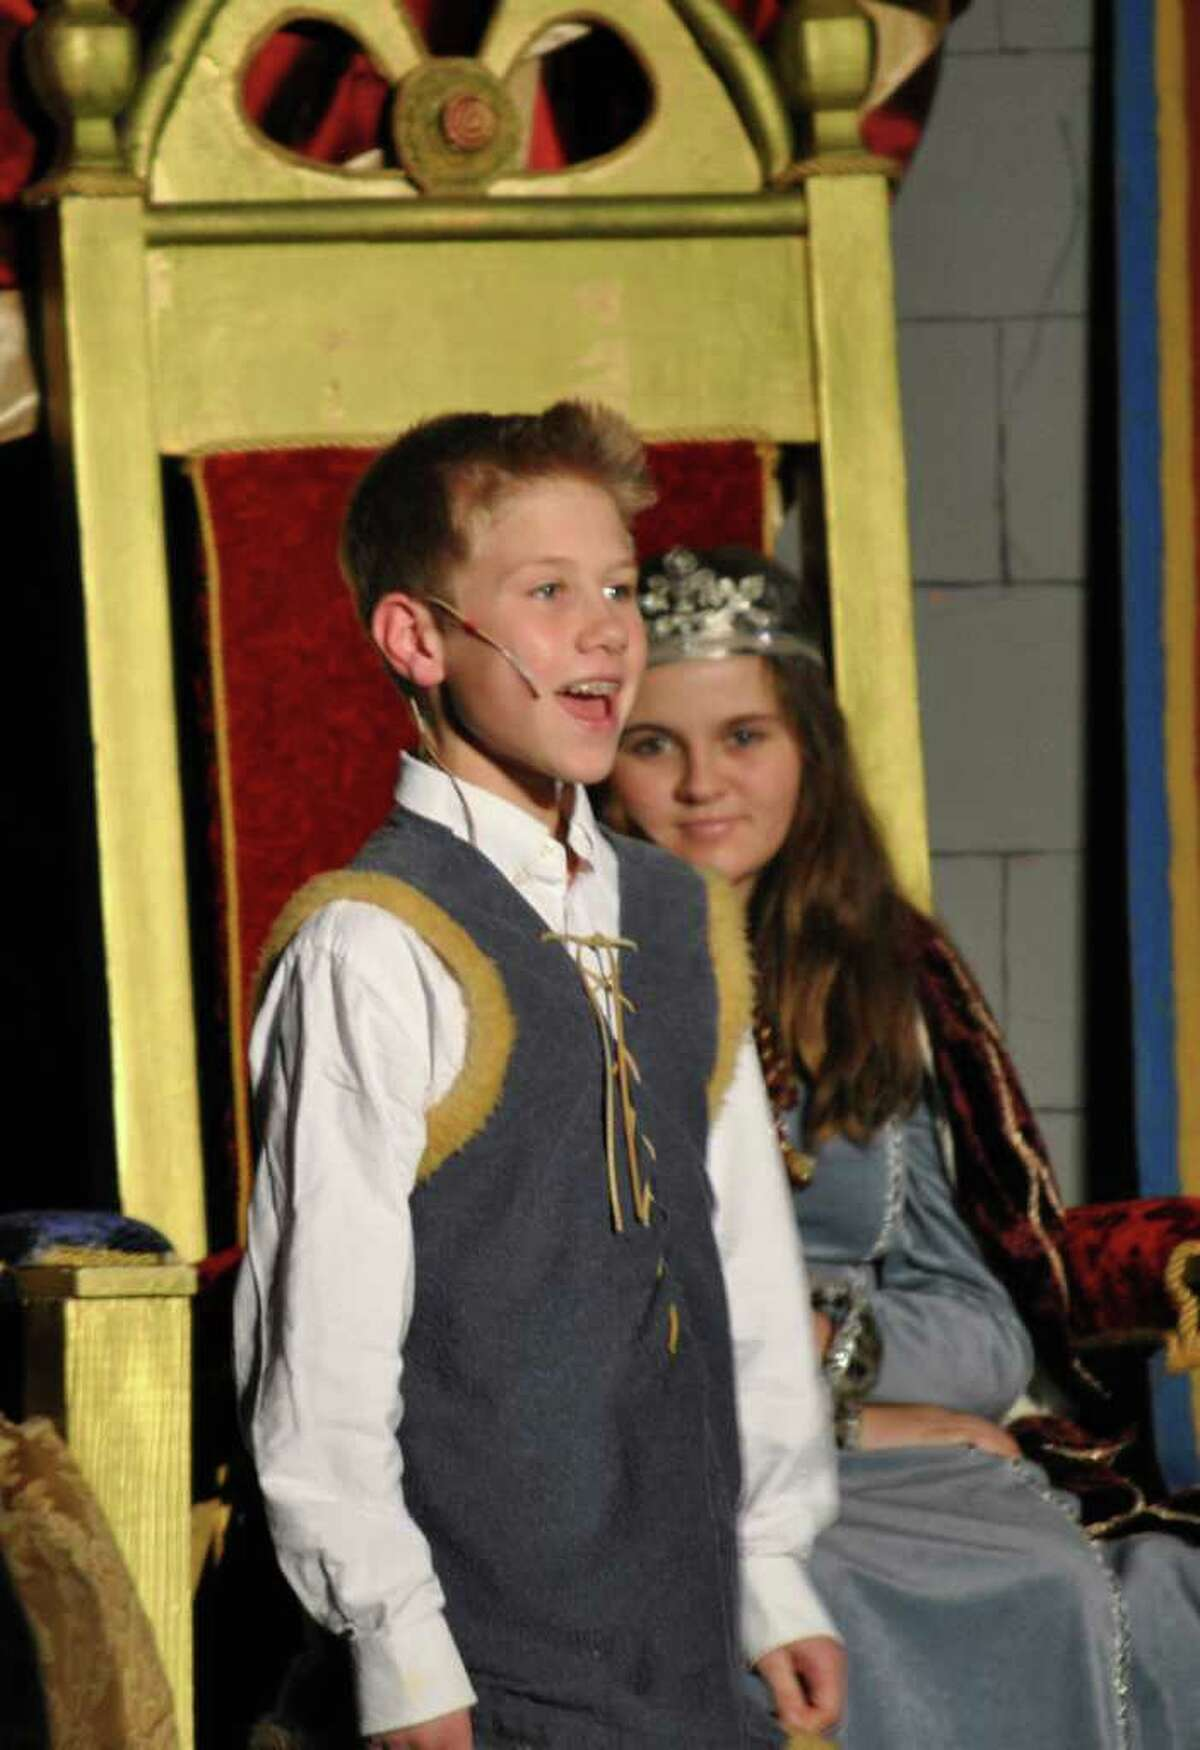 In his role as the prince, James Roland sings while one of the queens, Rebecca Ryan, listens from her golden throne during the Unquoa School's 31st annual Winter Festival.